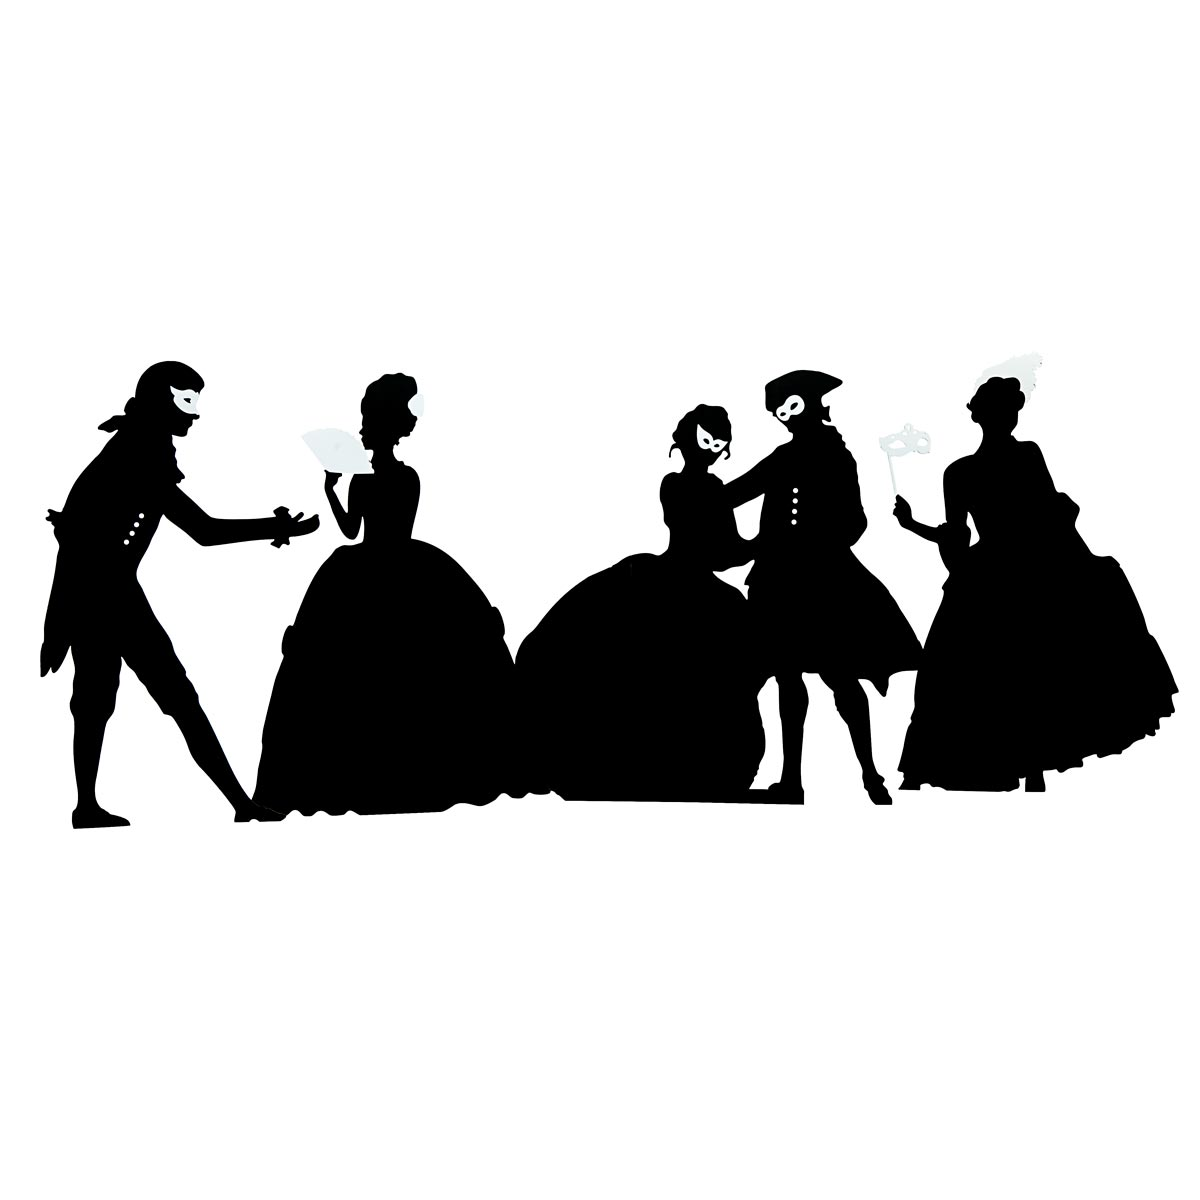 Shadow People Silhouettes Kit (set of 5)